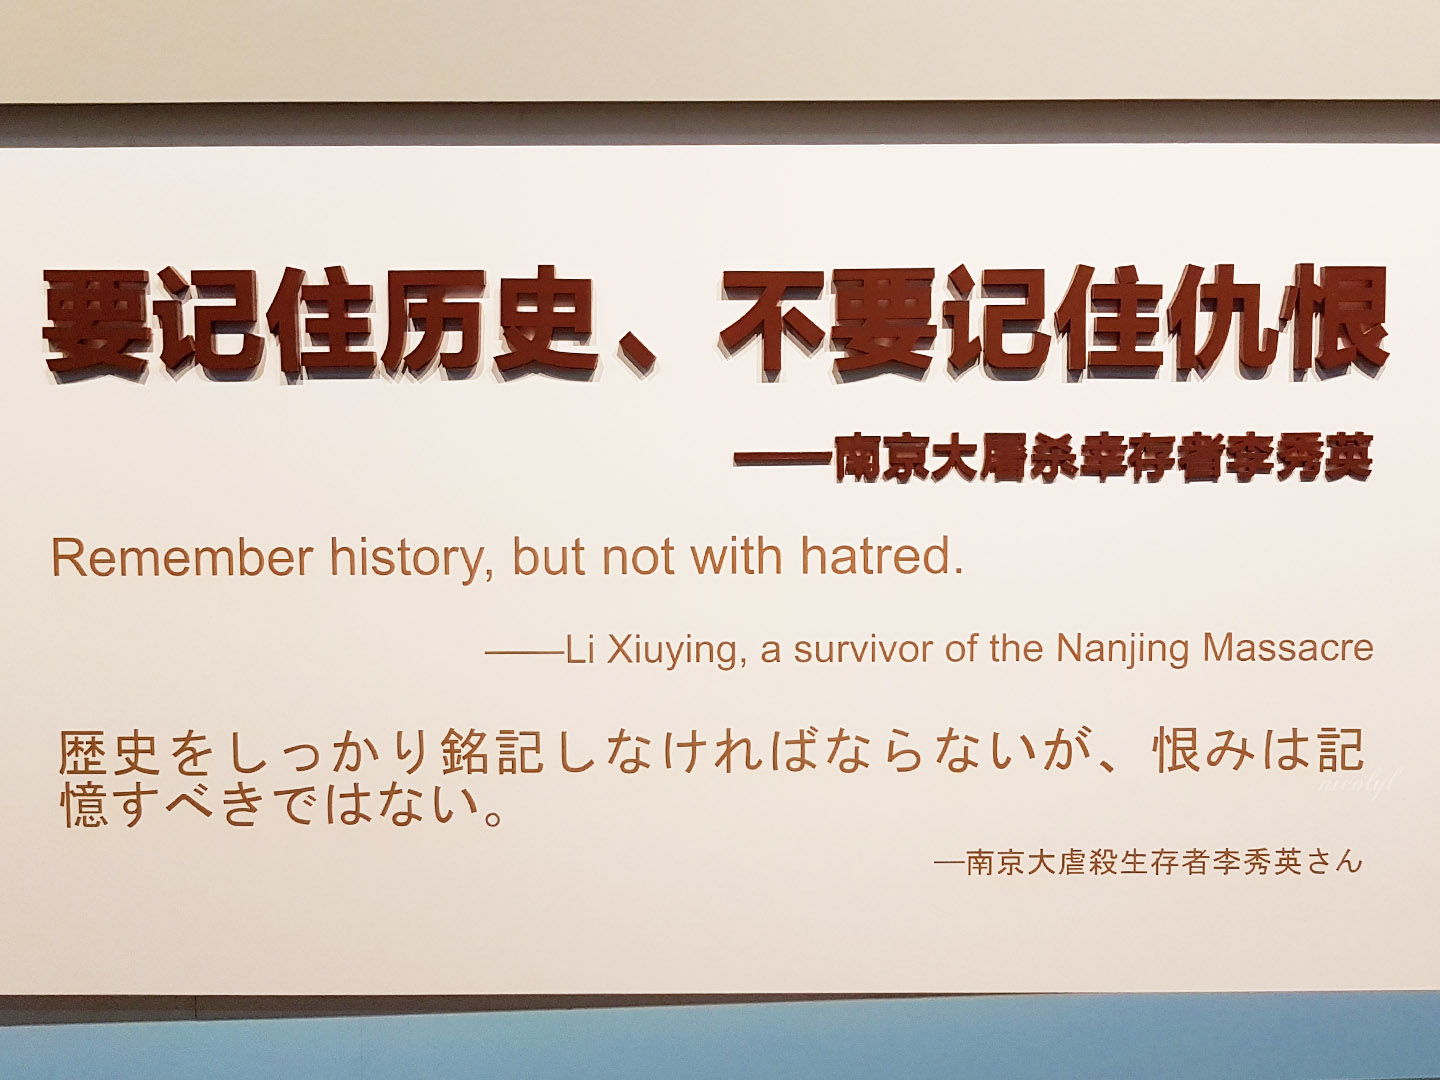 The Memorial of the Nanjing Massacre quote